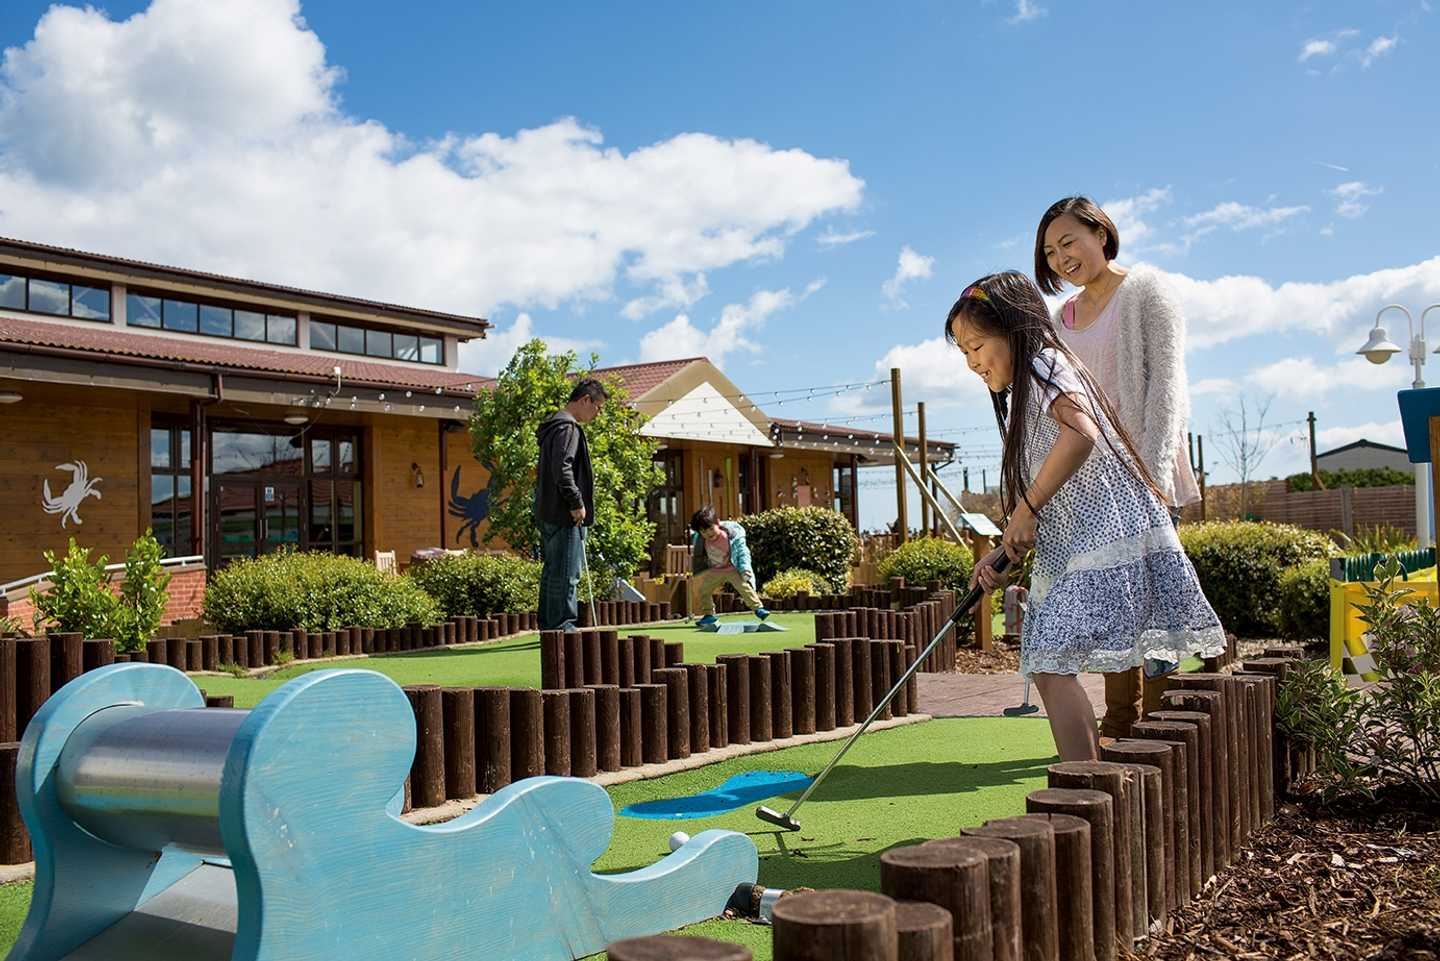 Guests playing on the crazy golf course